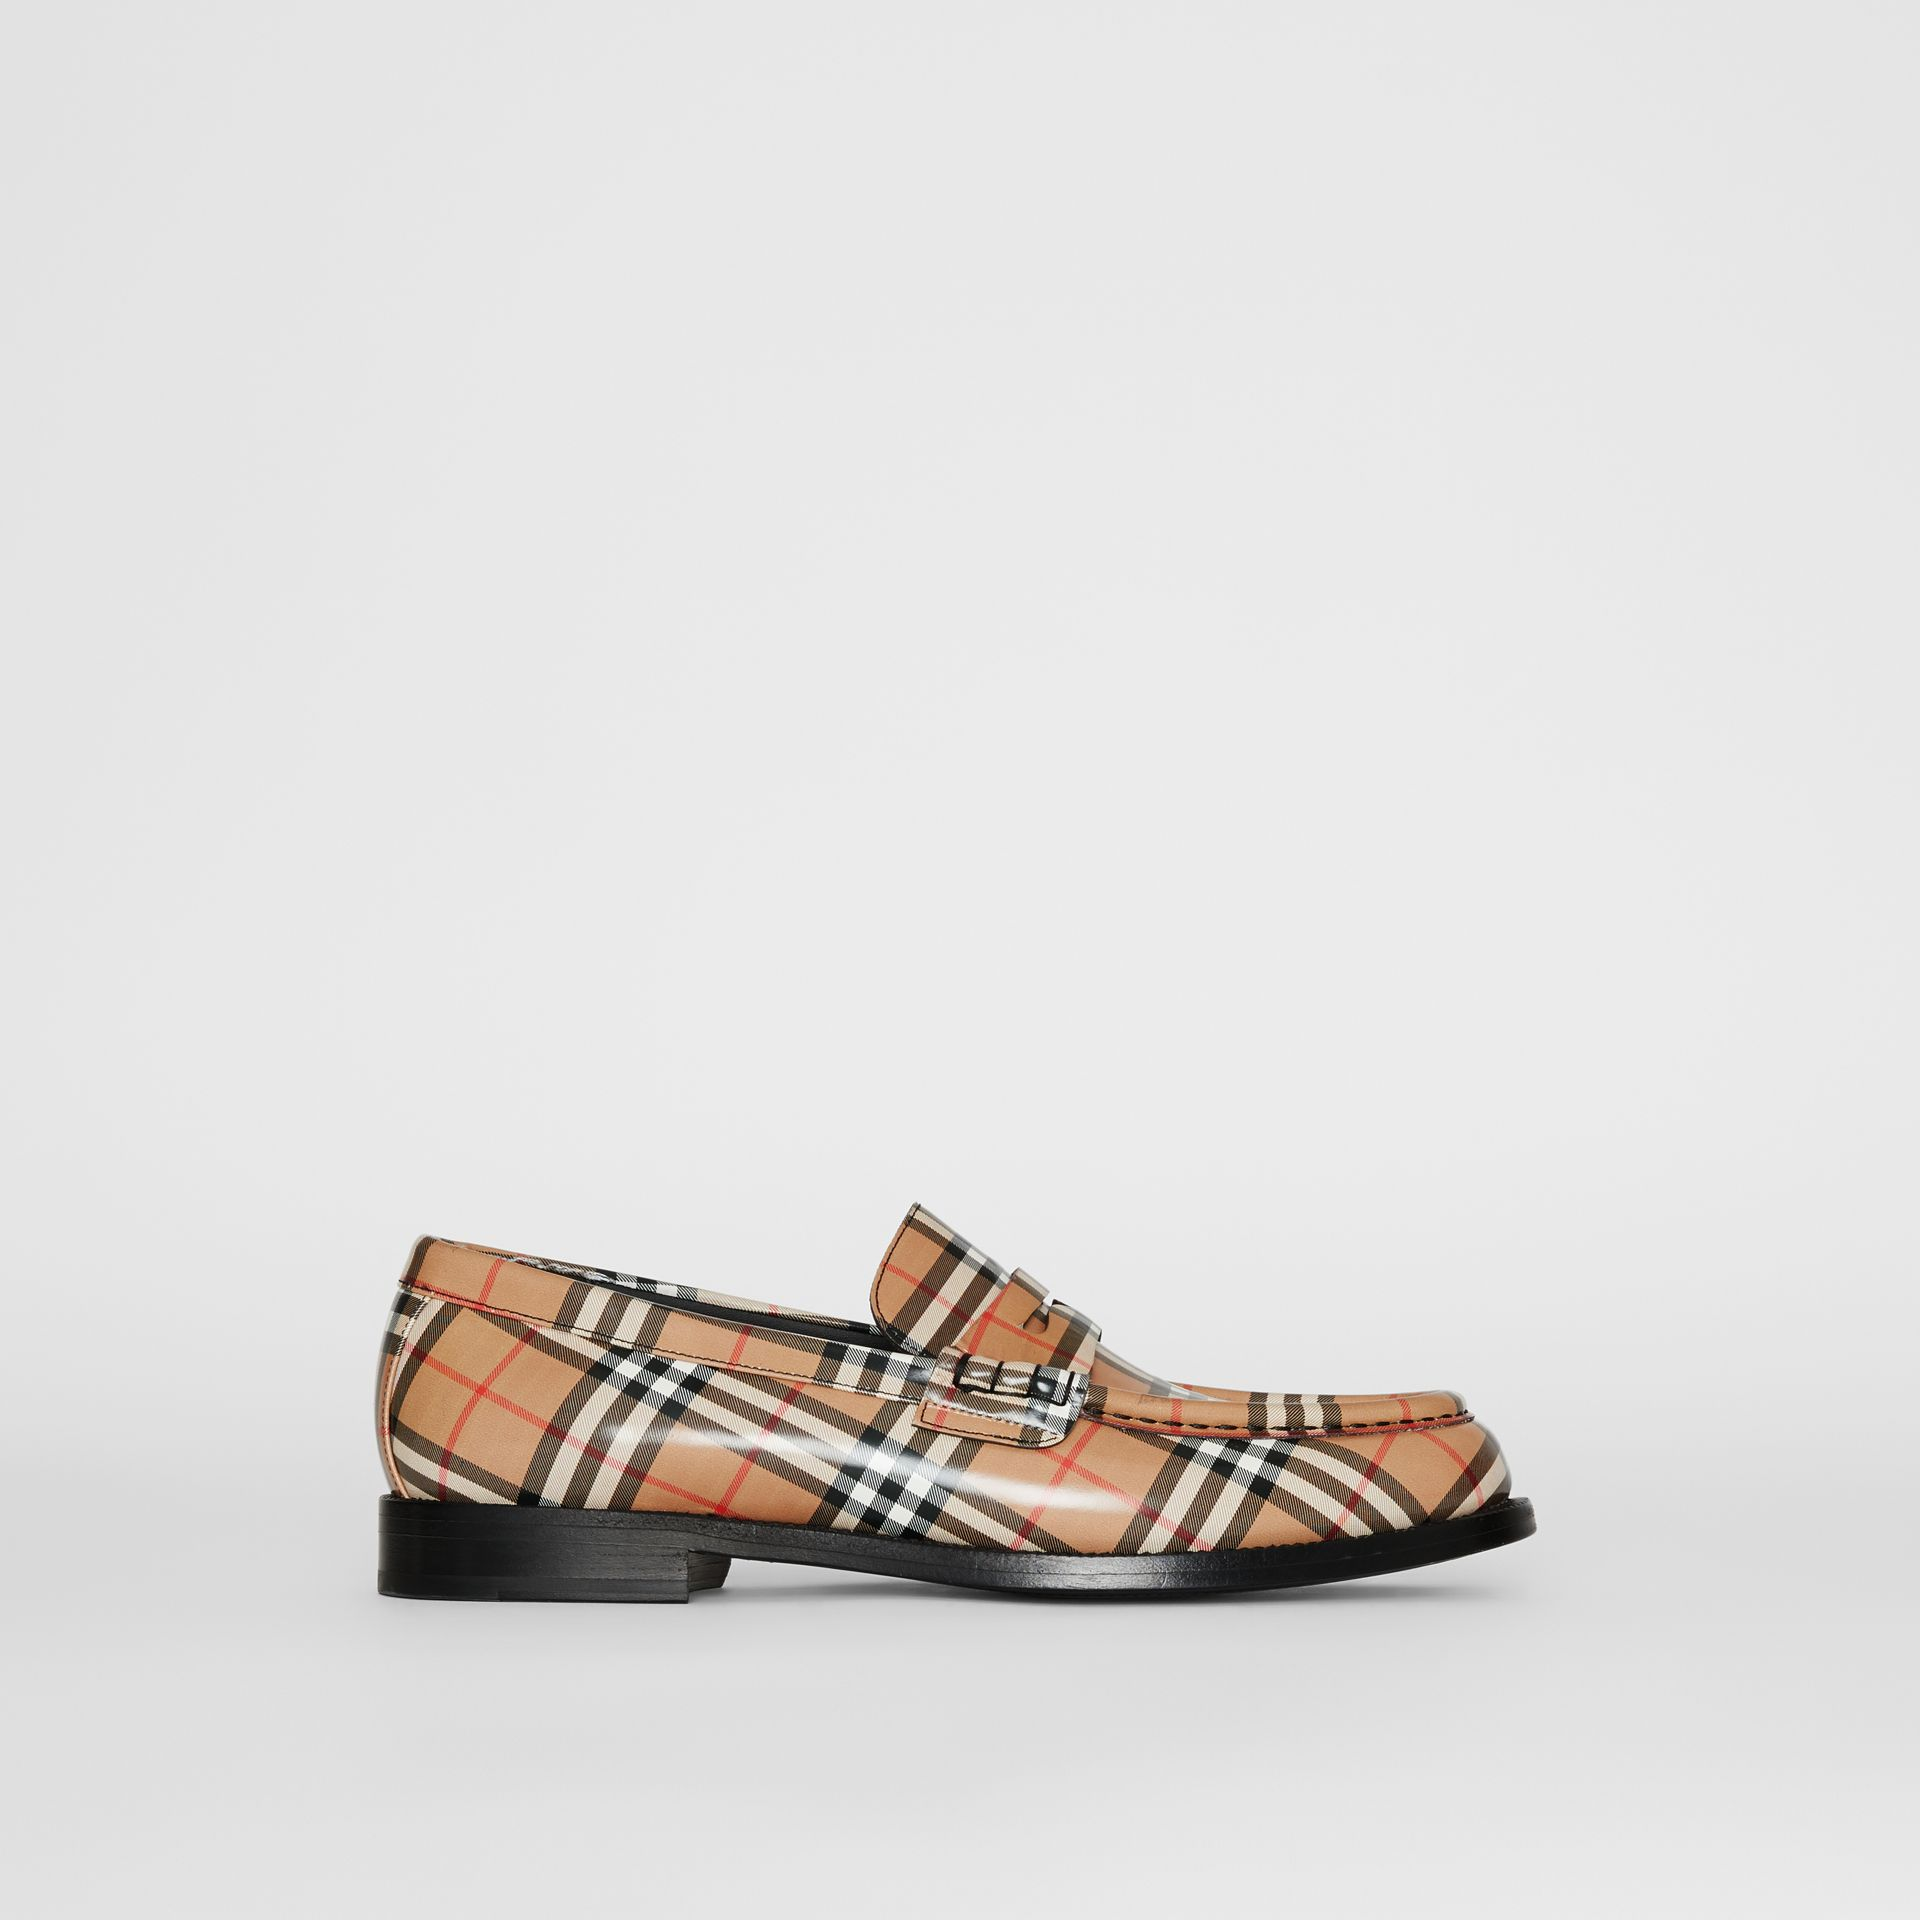 Gosha x Burberry Check Leather Loafers in Antique Yellow - Men | Burberry Australia - gallery image 3